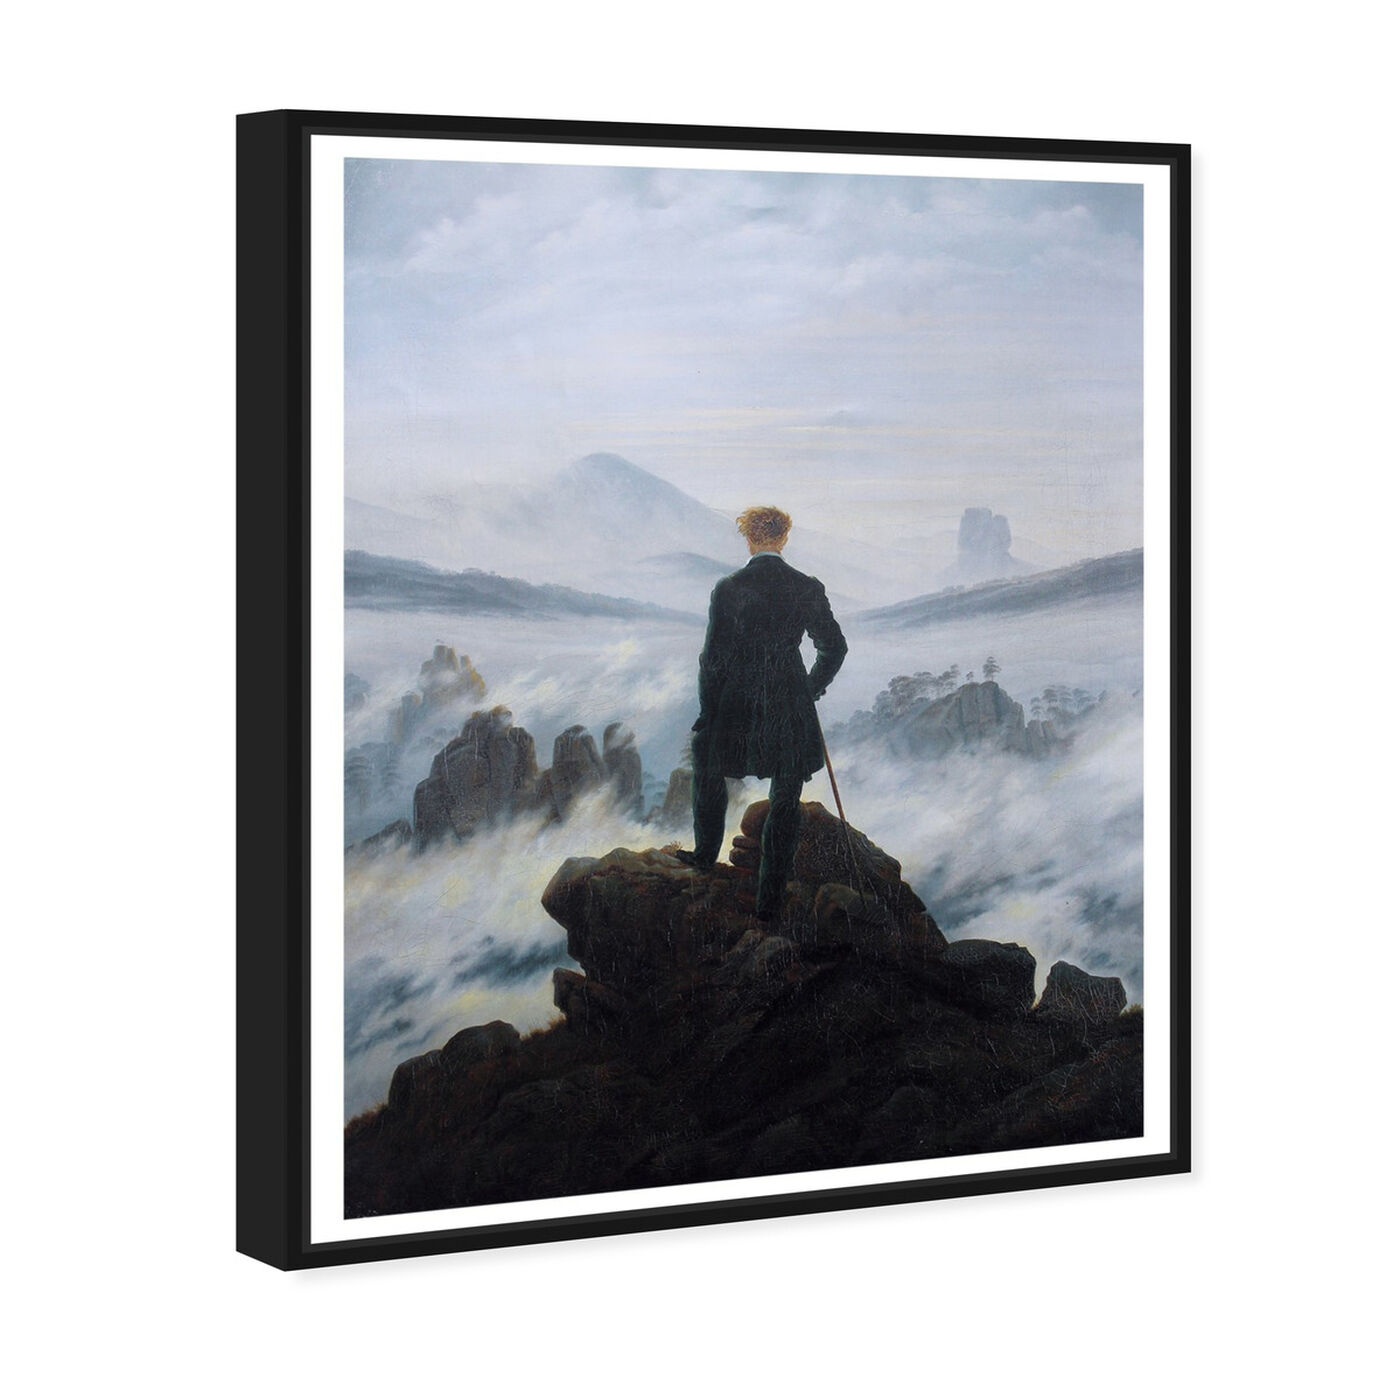 Angled view of Friedrich - The Wanderer featuring classic and figurative and classical figures art.